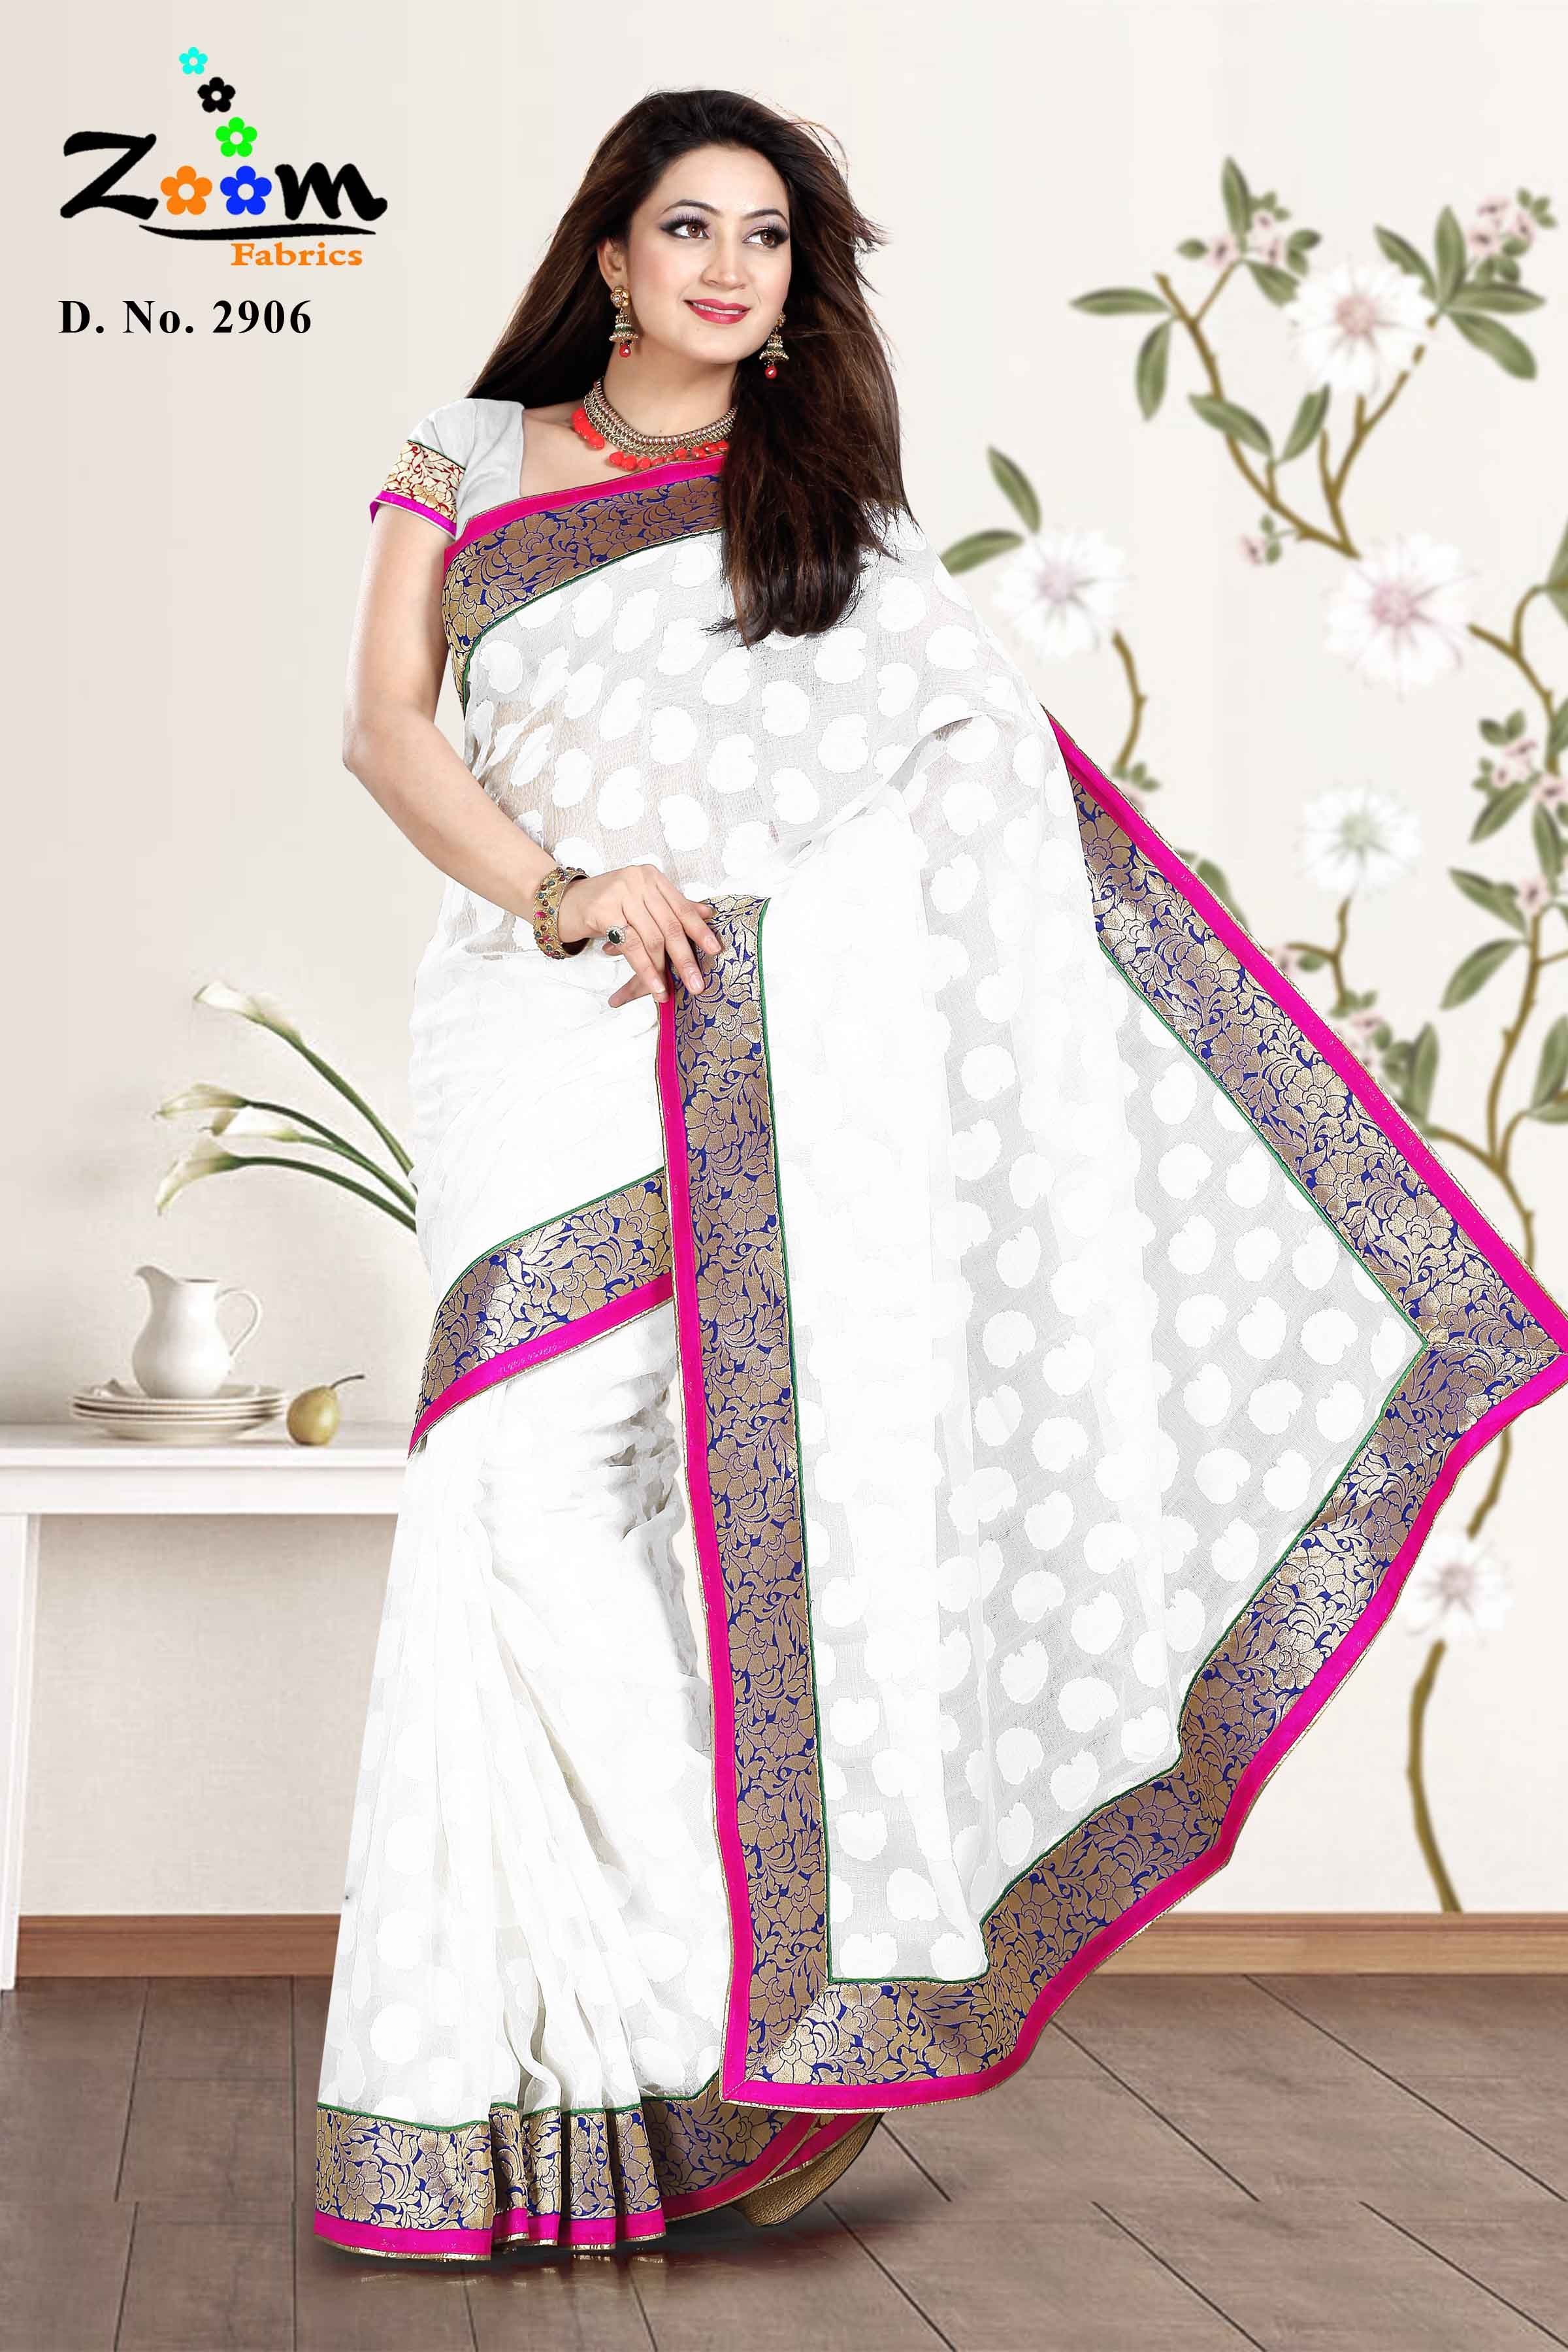 Designer Embroidered Saree Net Parsi Work Party Wear Saree: AF2906 available at Craftsvilla for Rs.1115